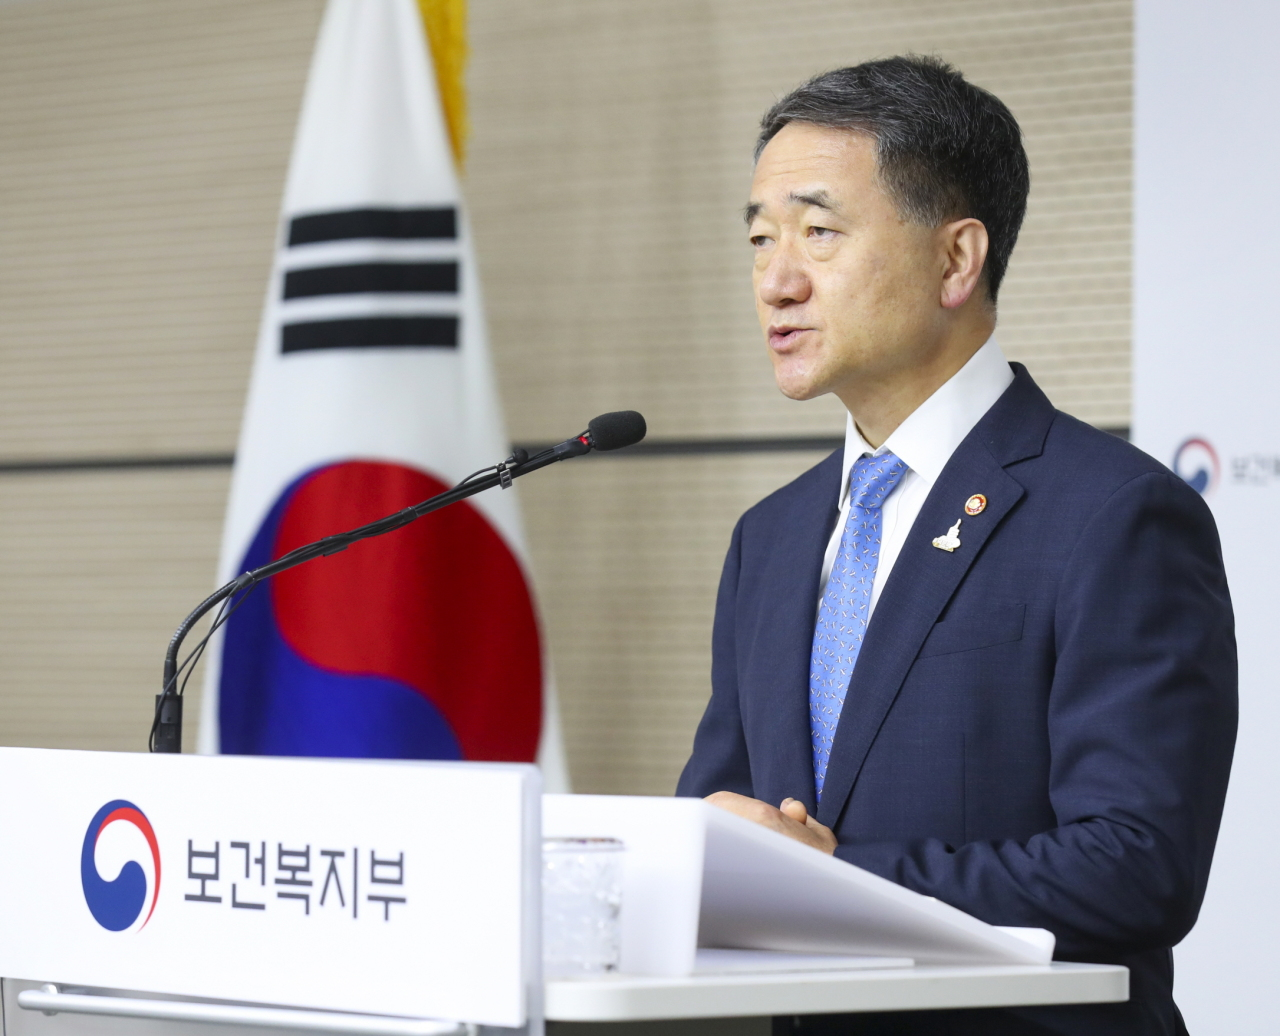 Minister of Health and Welfare Park Neung-hoo speaks Thursday morning at the government complex building in Sejong. (Health Ministry)